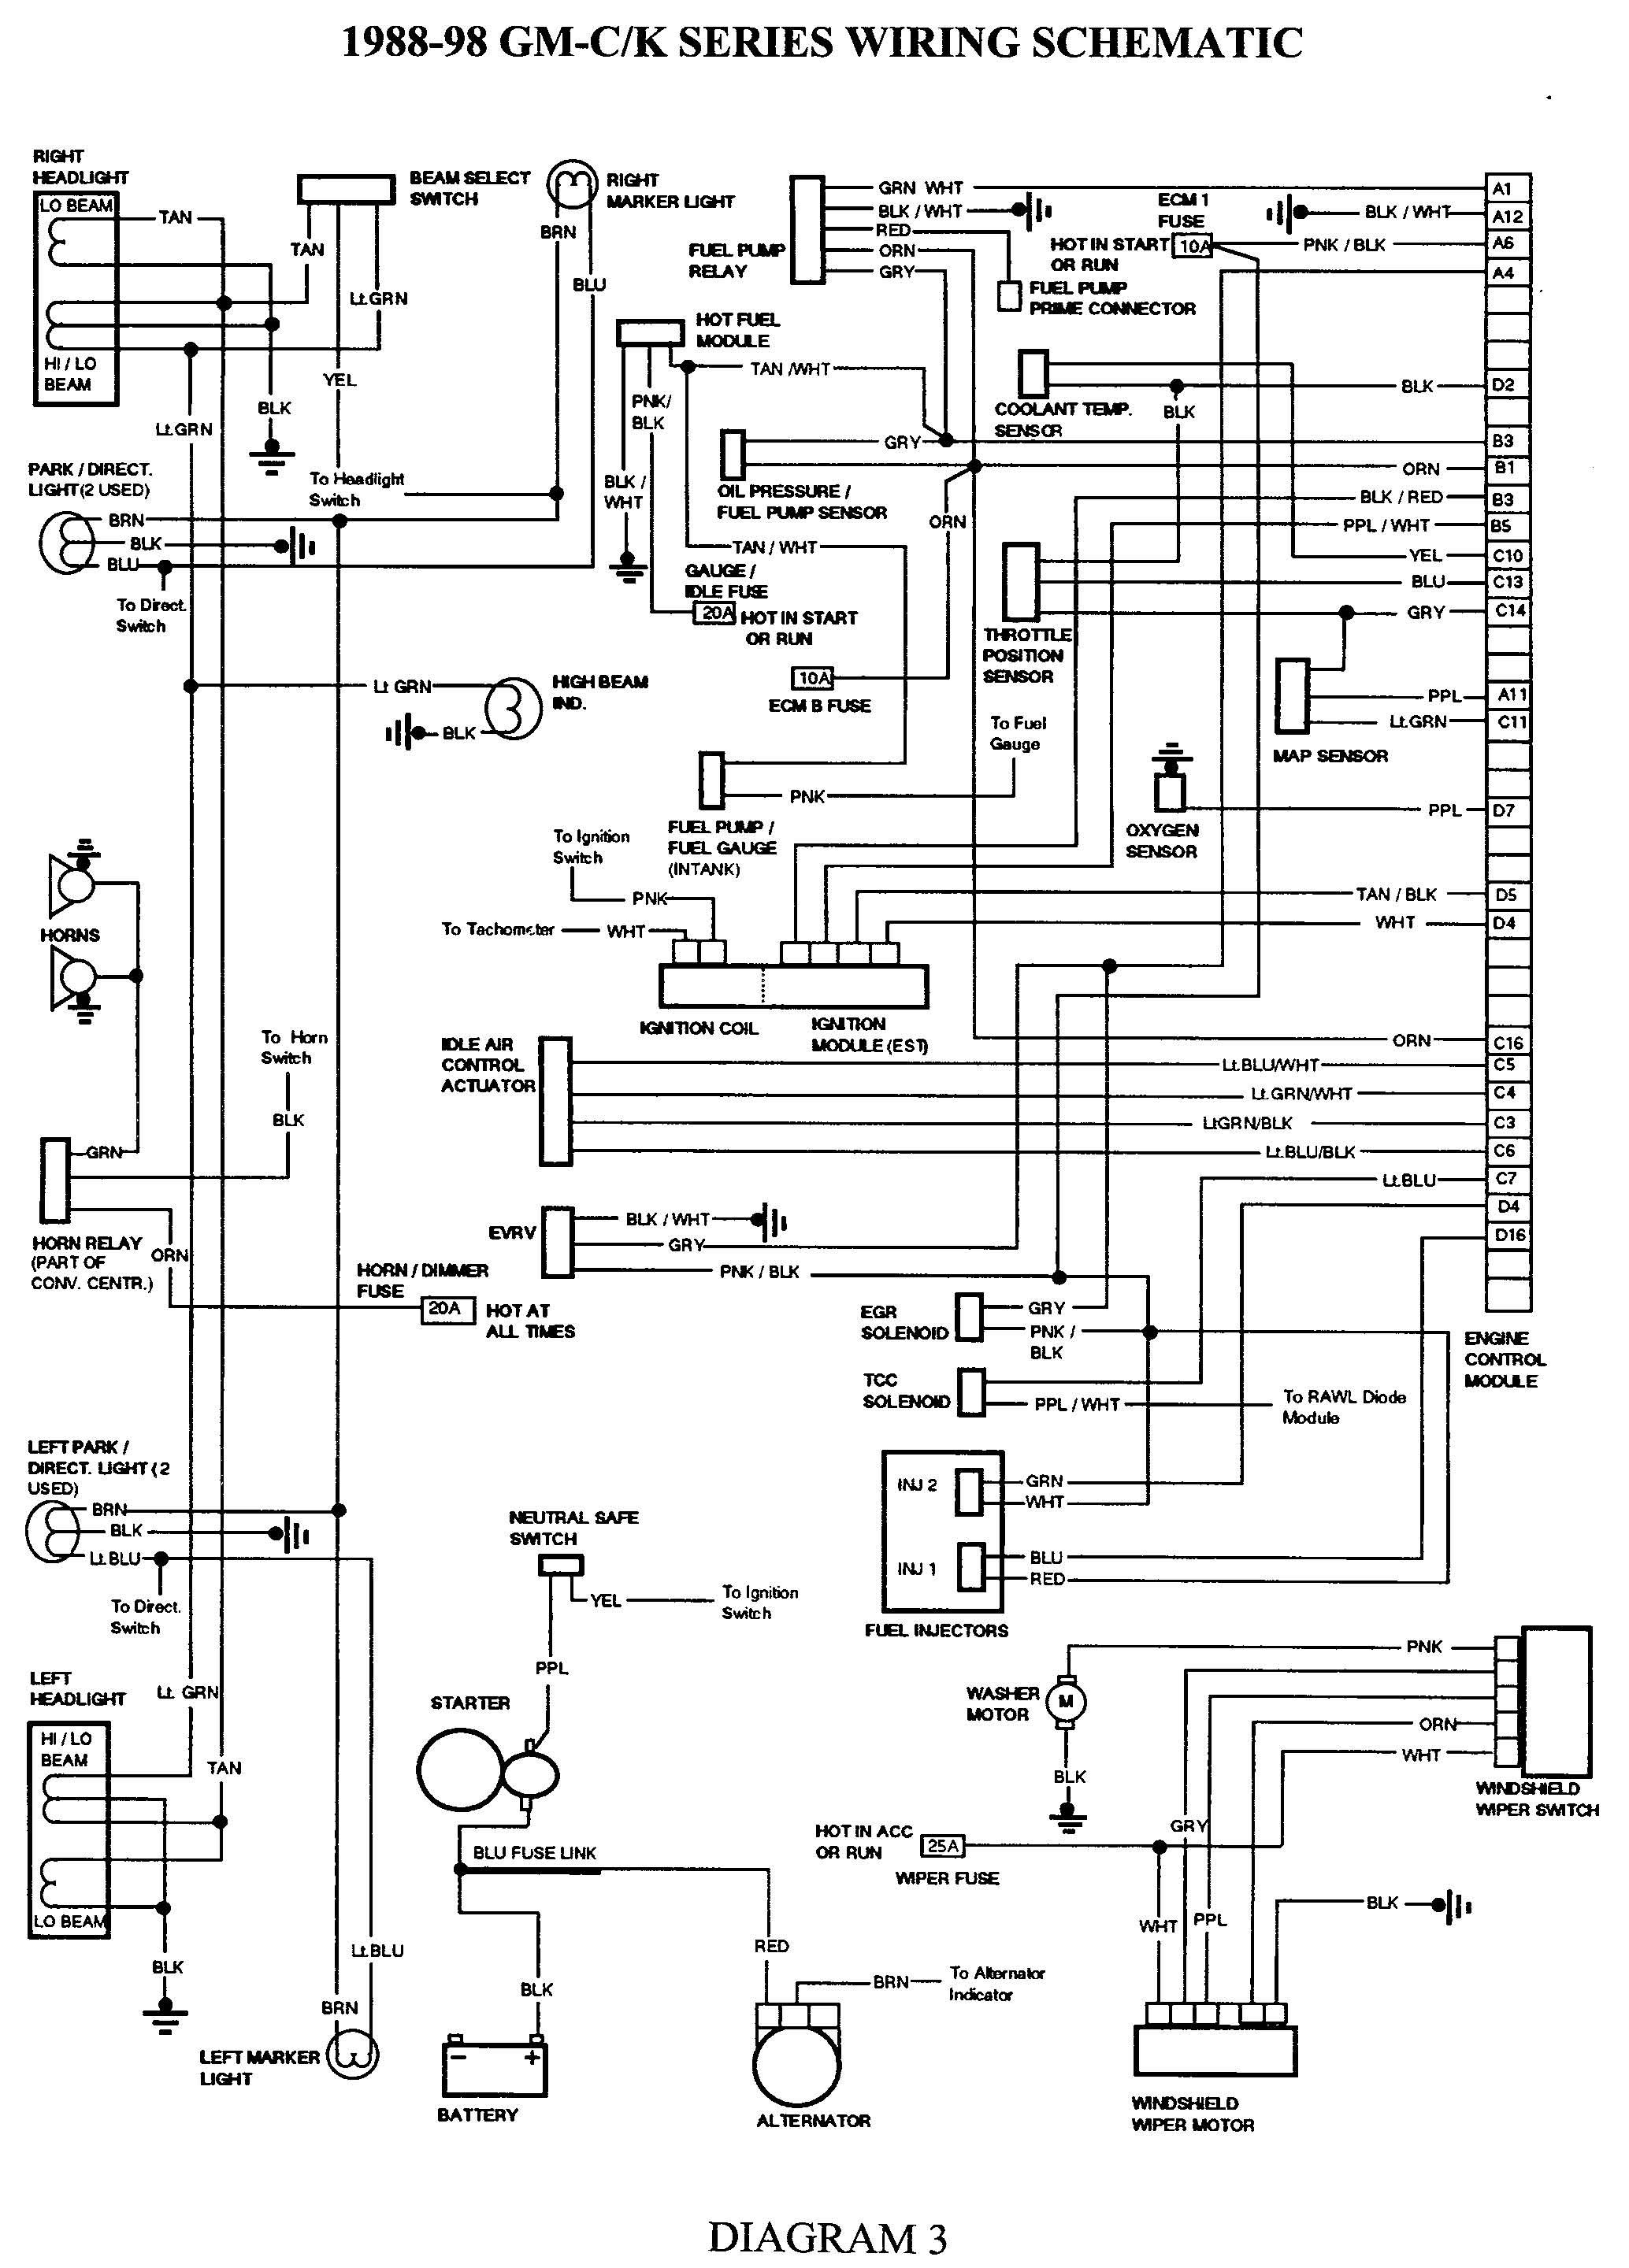 2000 gmc c6500 steering column wiring wiring diagram detailed chevy suburban wiring diagram 1999 gmc k2500 [ 2068 x 2880 Pixel ]